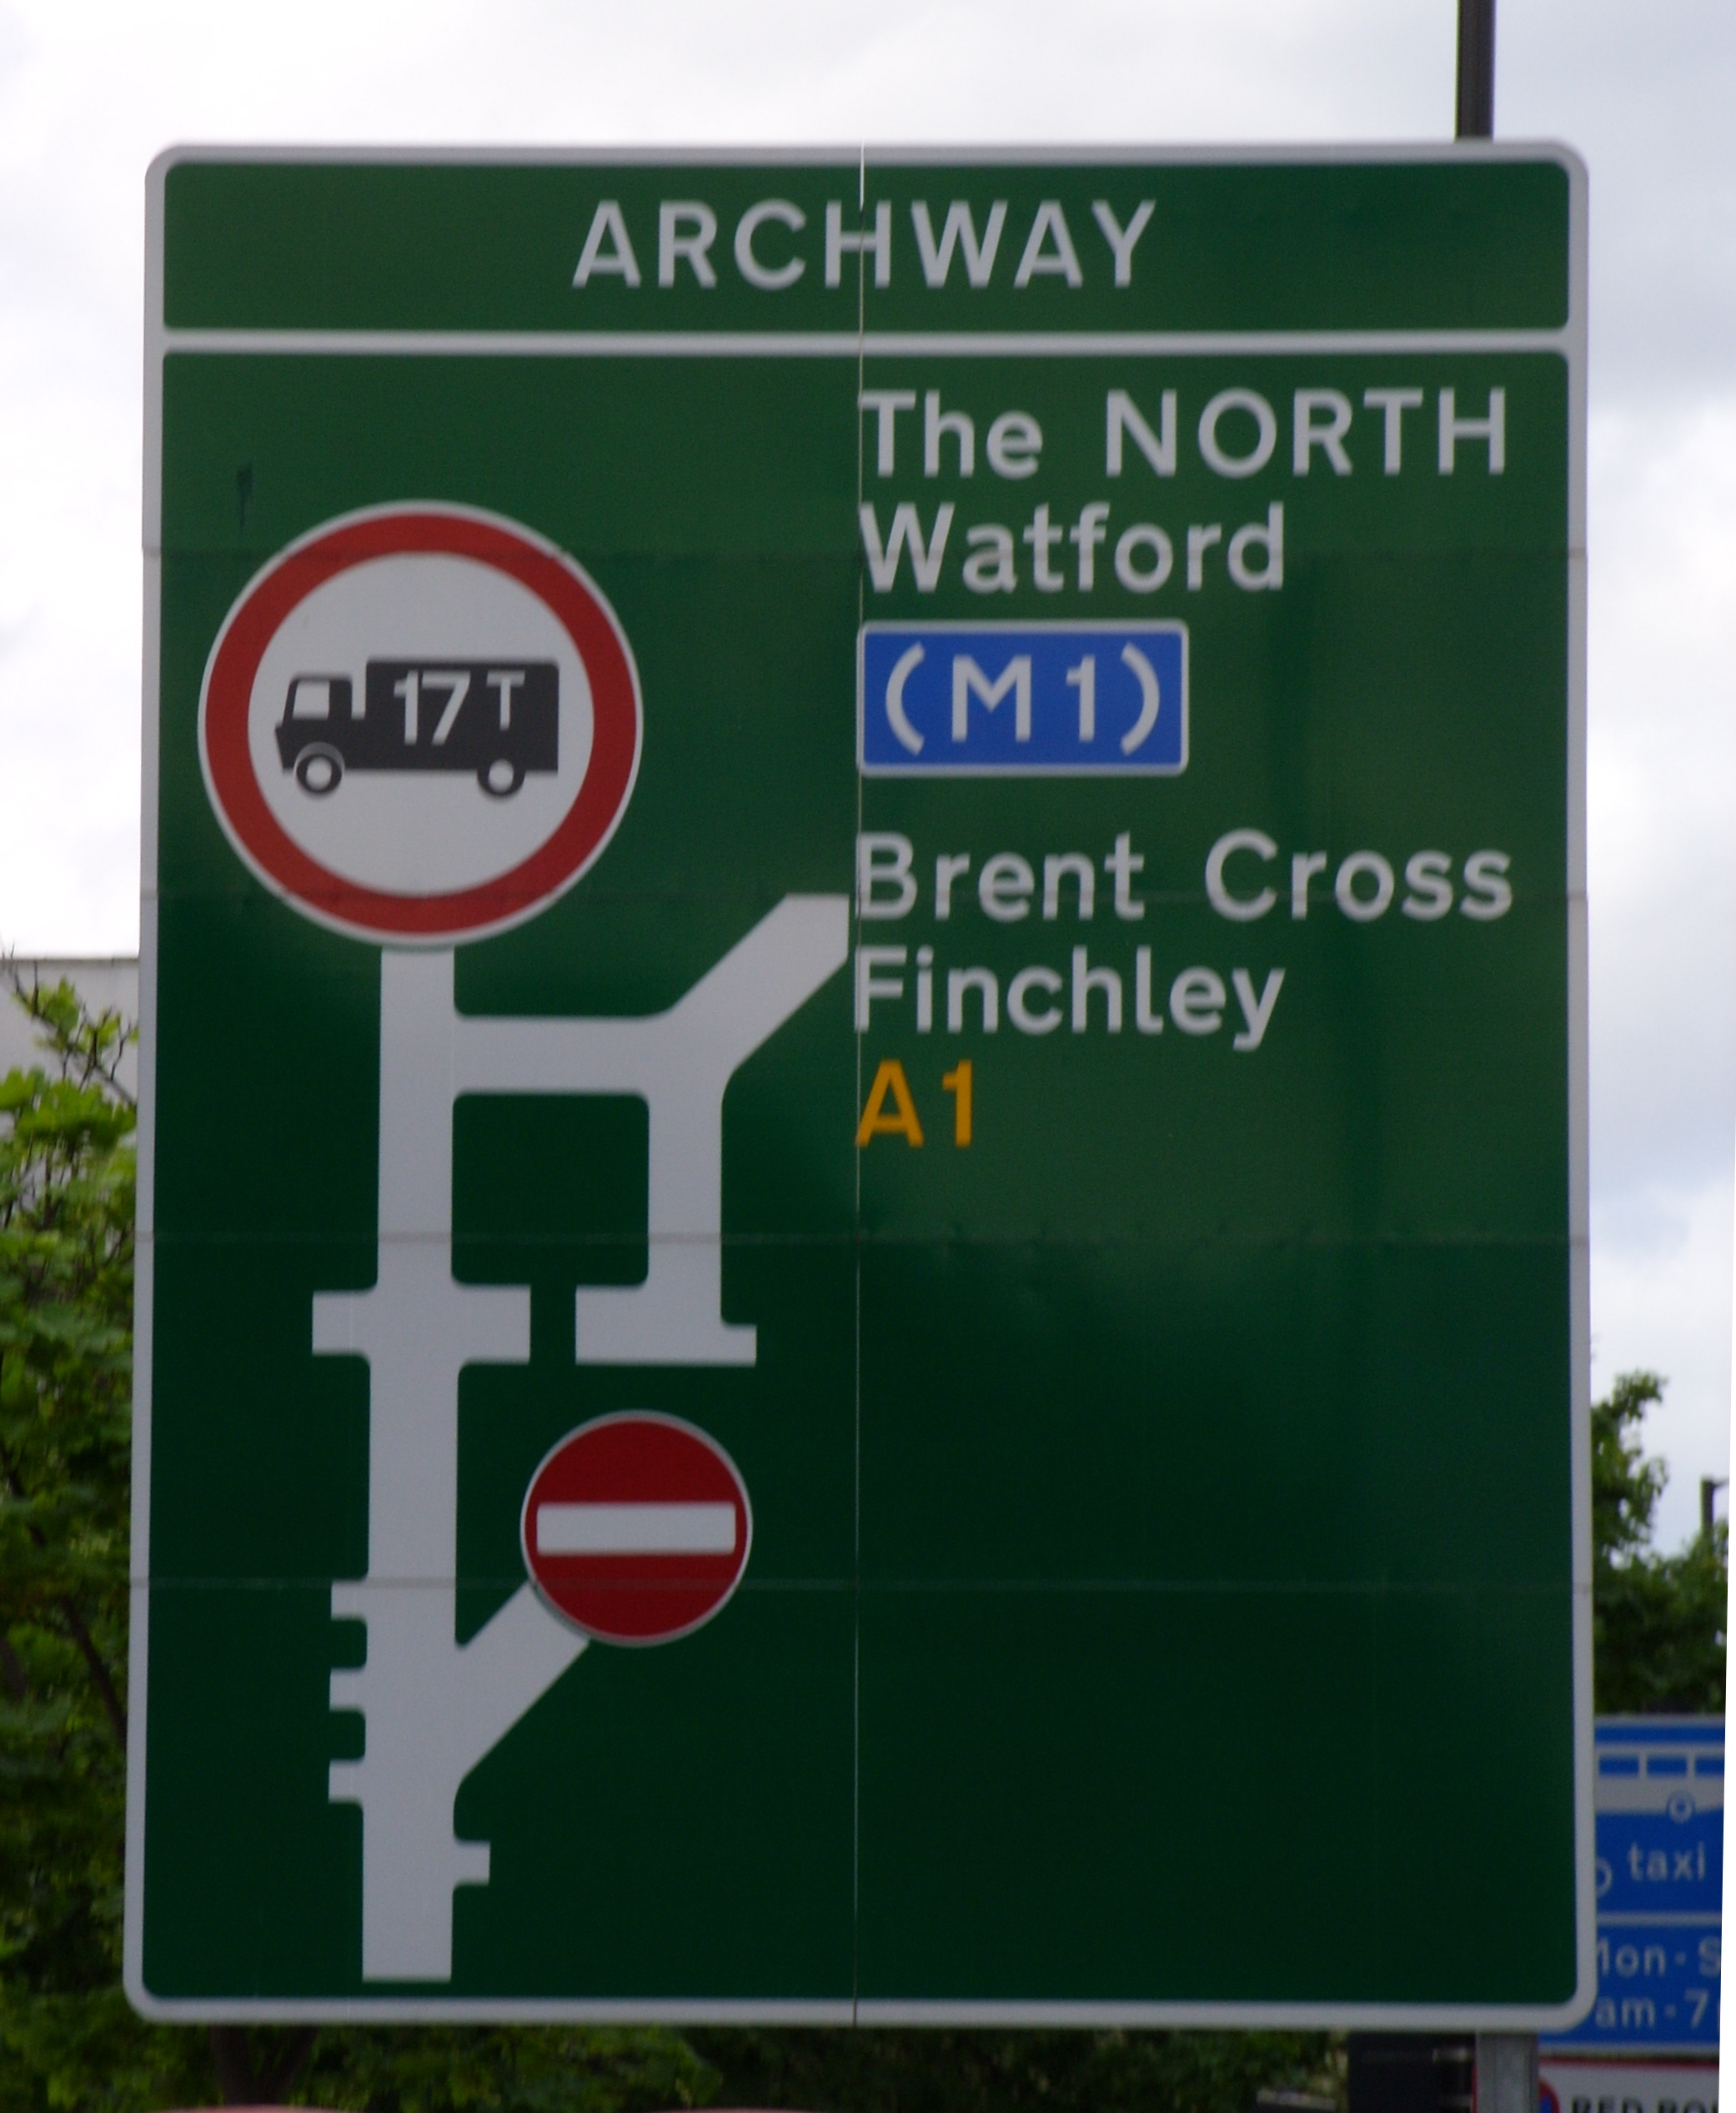 A1 in London - Wikiwand